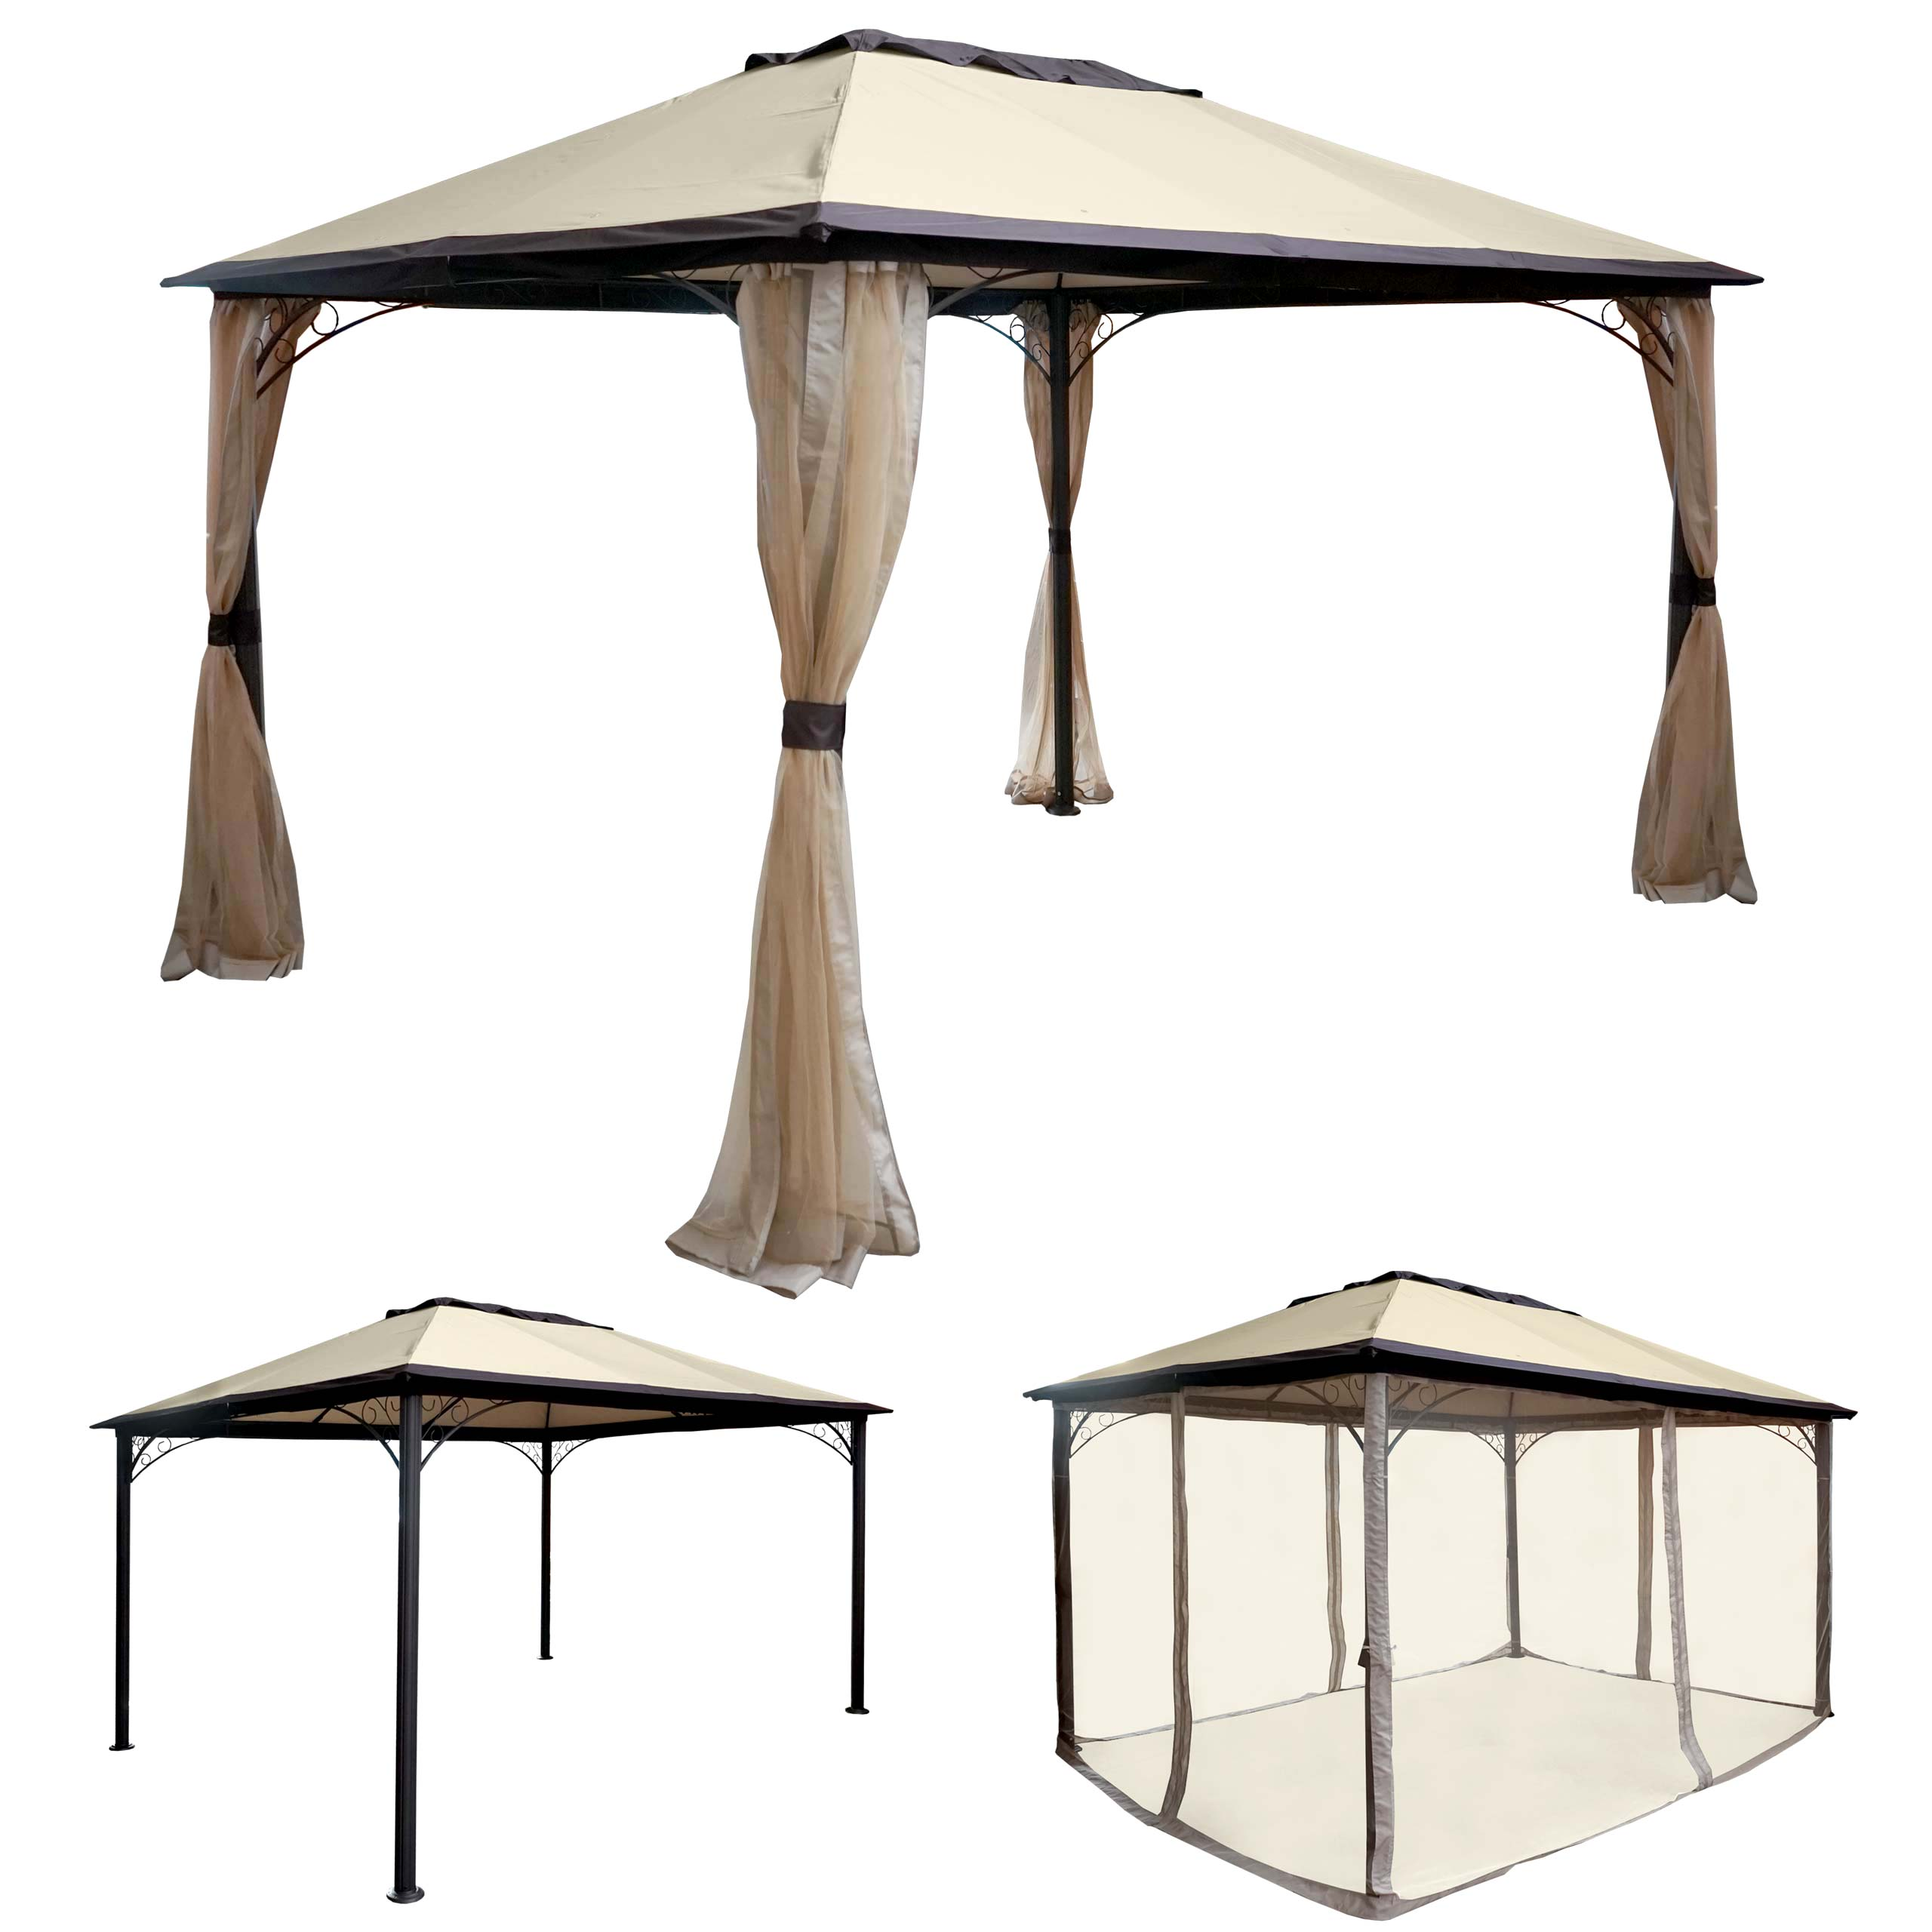 pergola merida garten pavillon stabiles 7cm alu gestell mit moskitonetz 4x3m ebay. Black Bedroom Furniture Sets. Home Design Ideas